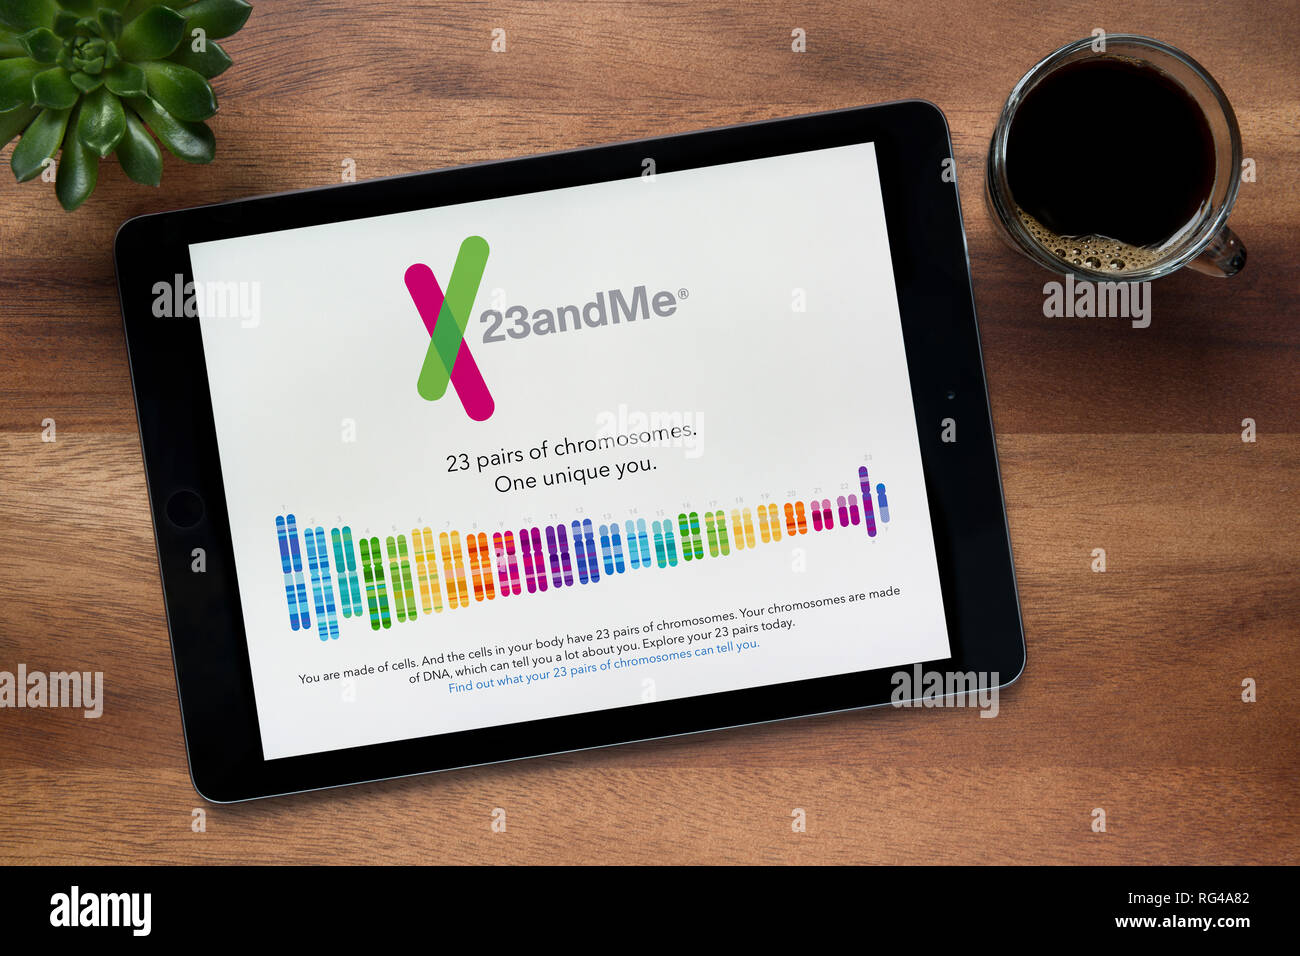 The website of 23andMe is seen on an iPad tablet, on a wooden table along with an espresso coffee and a house plant (Editorial use only). - Stock Image